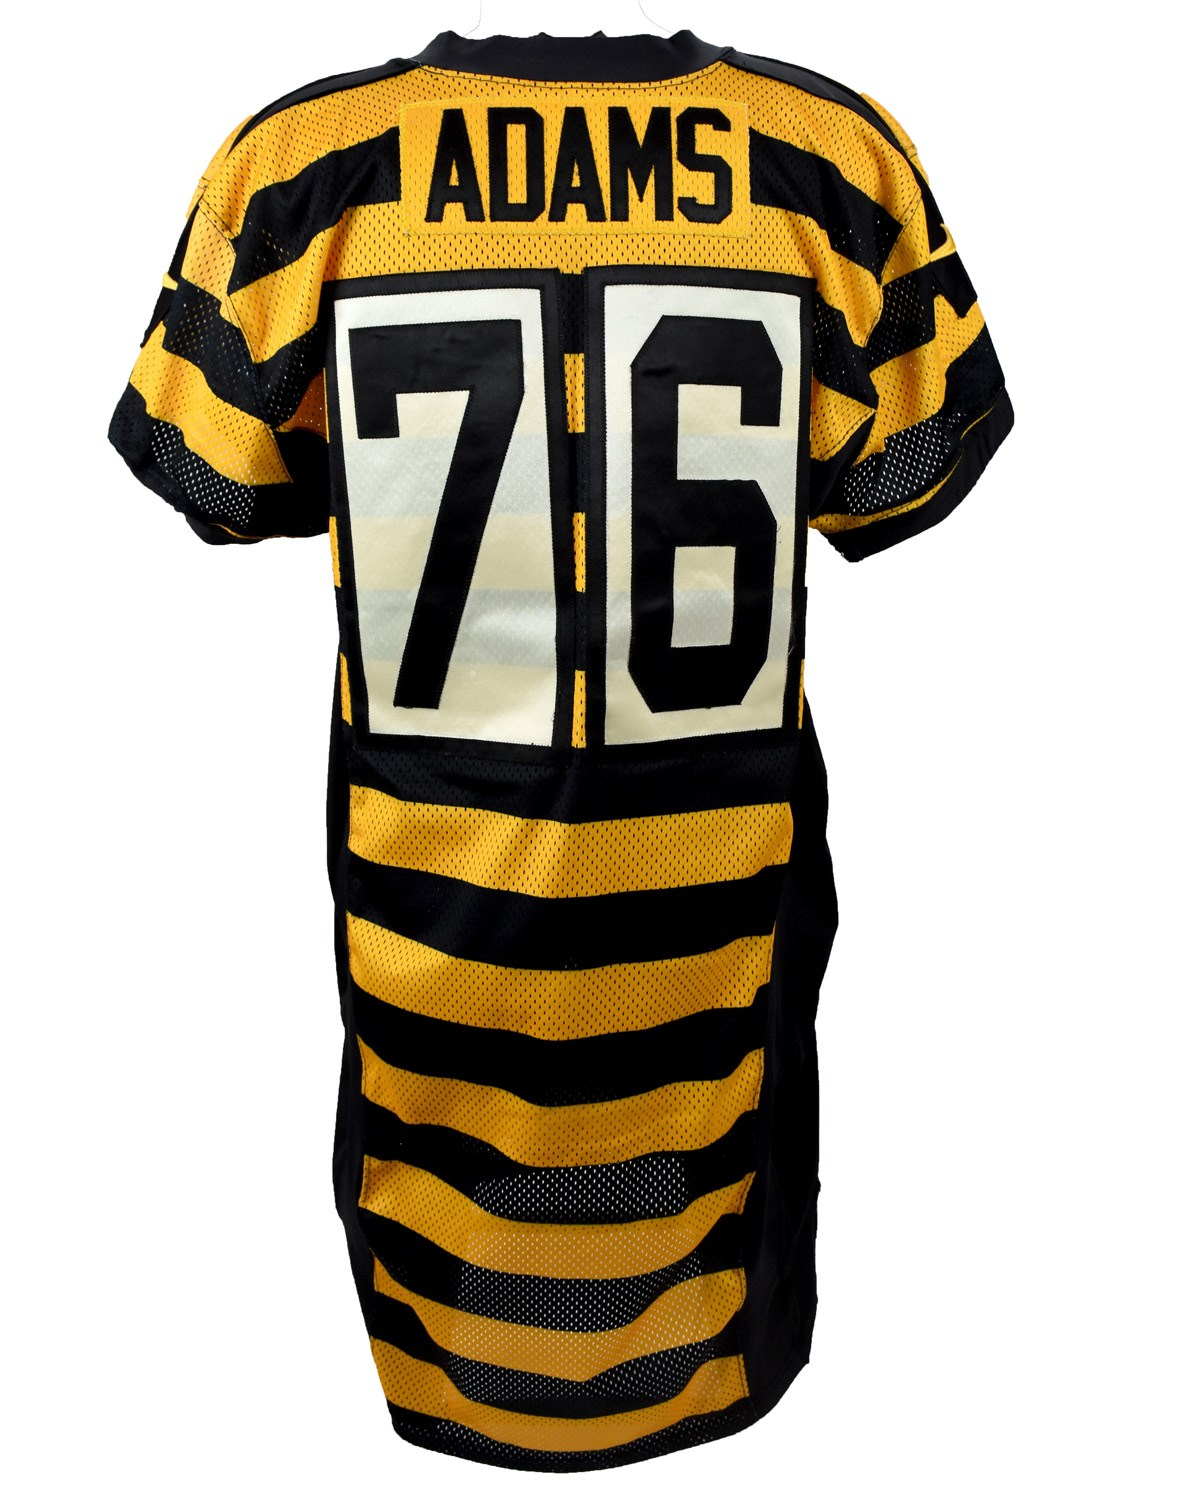 separation shoes b30ae 8145d 2015 Mike Adams Pittsburgh Steelers Game Worn Throwback Jersey